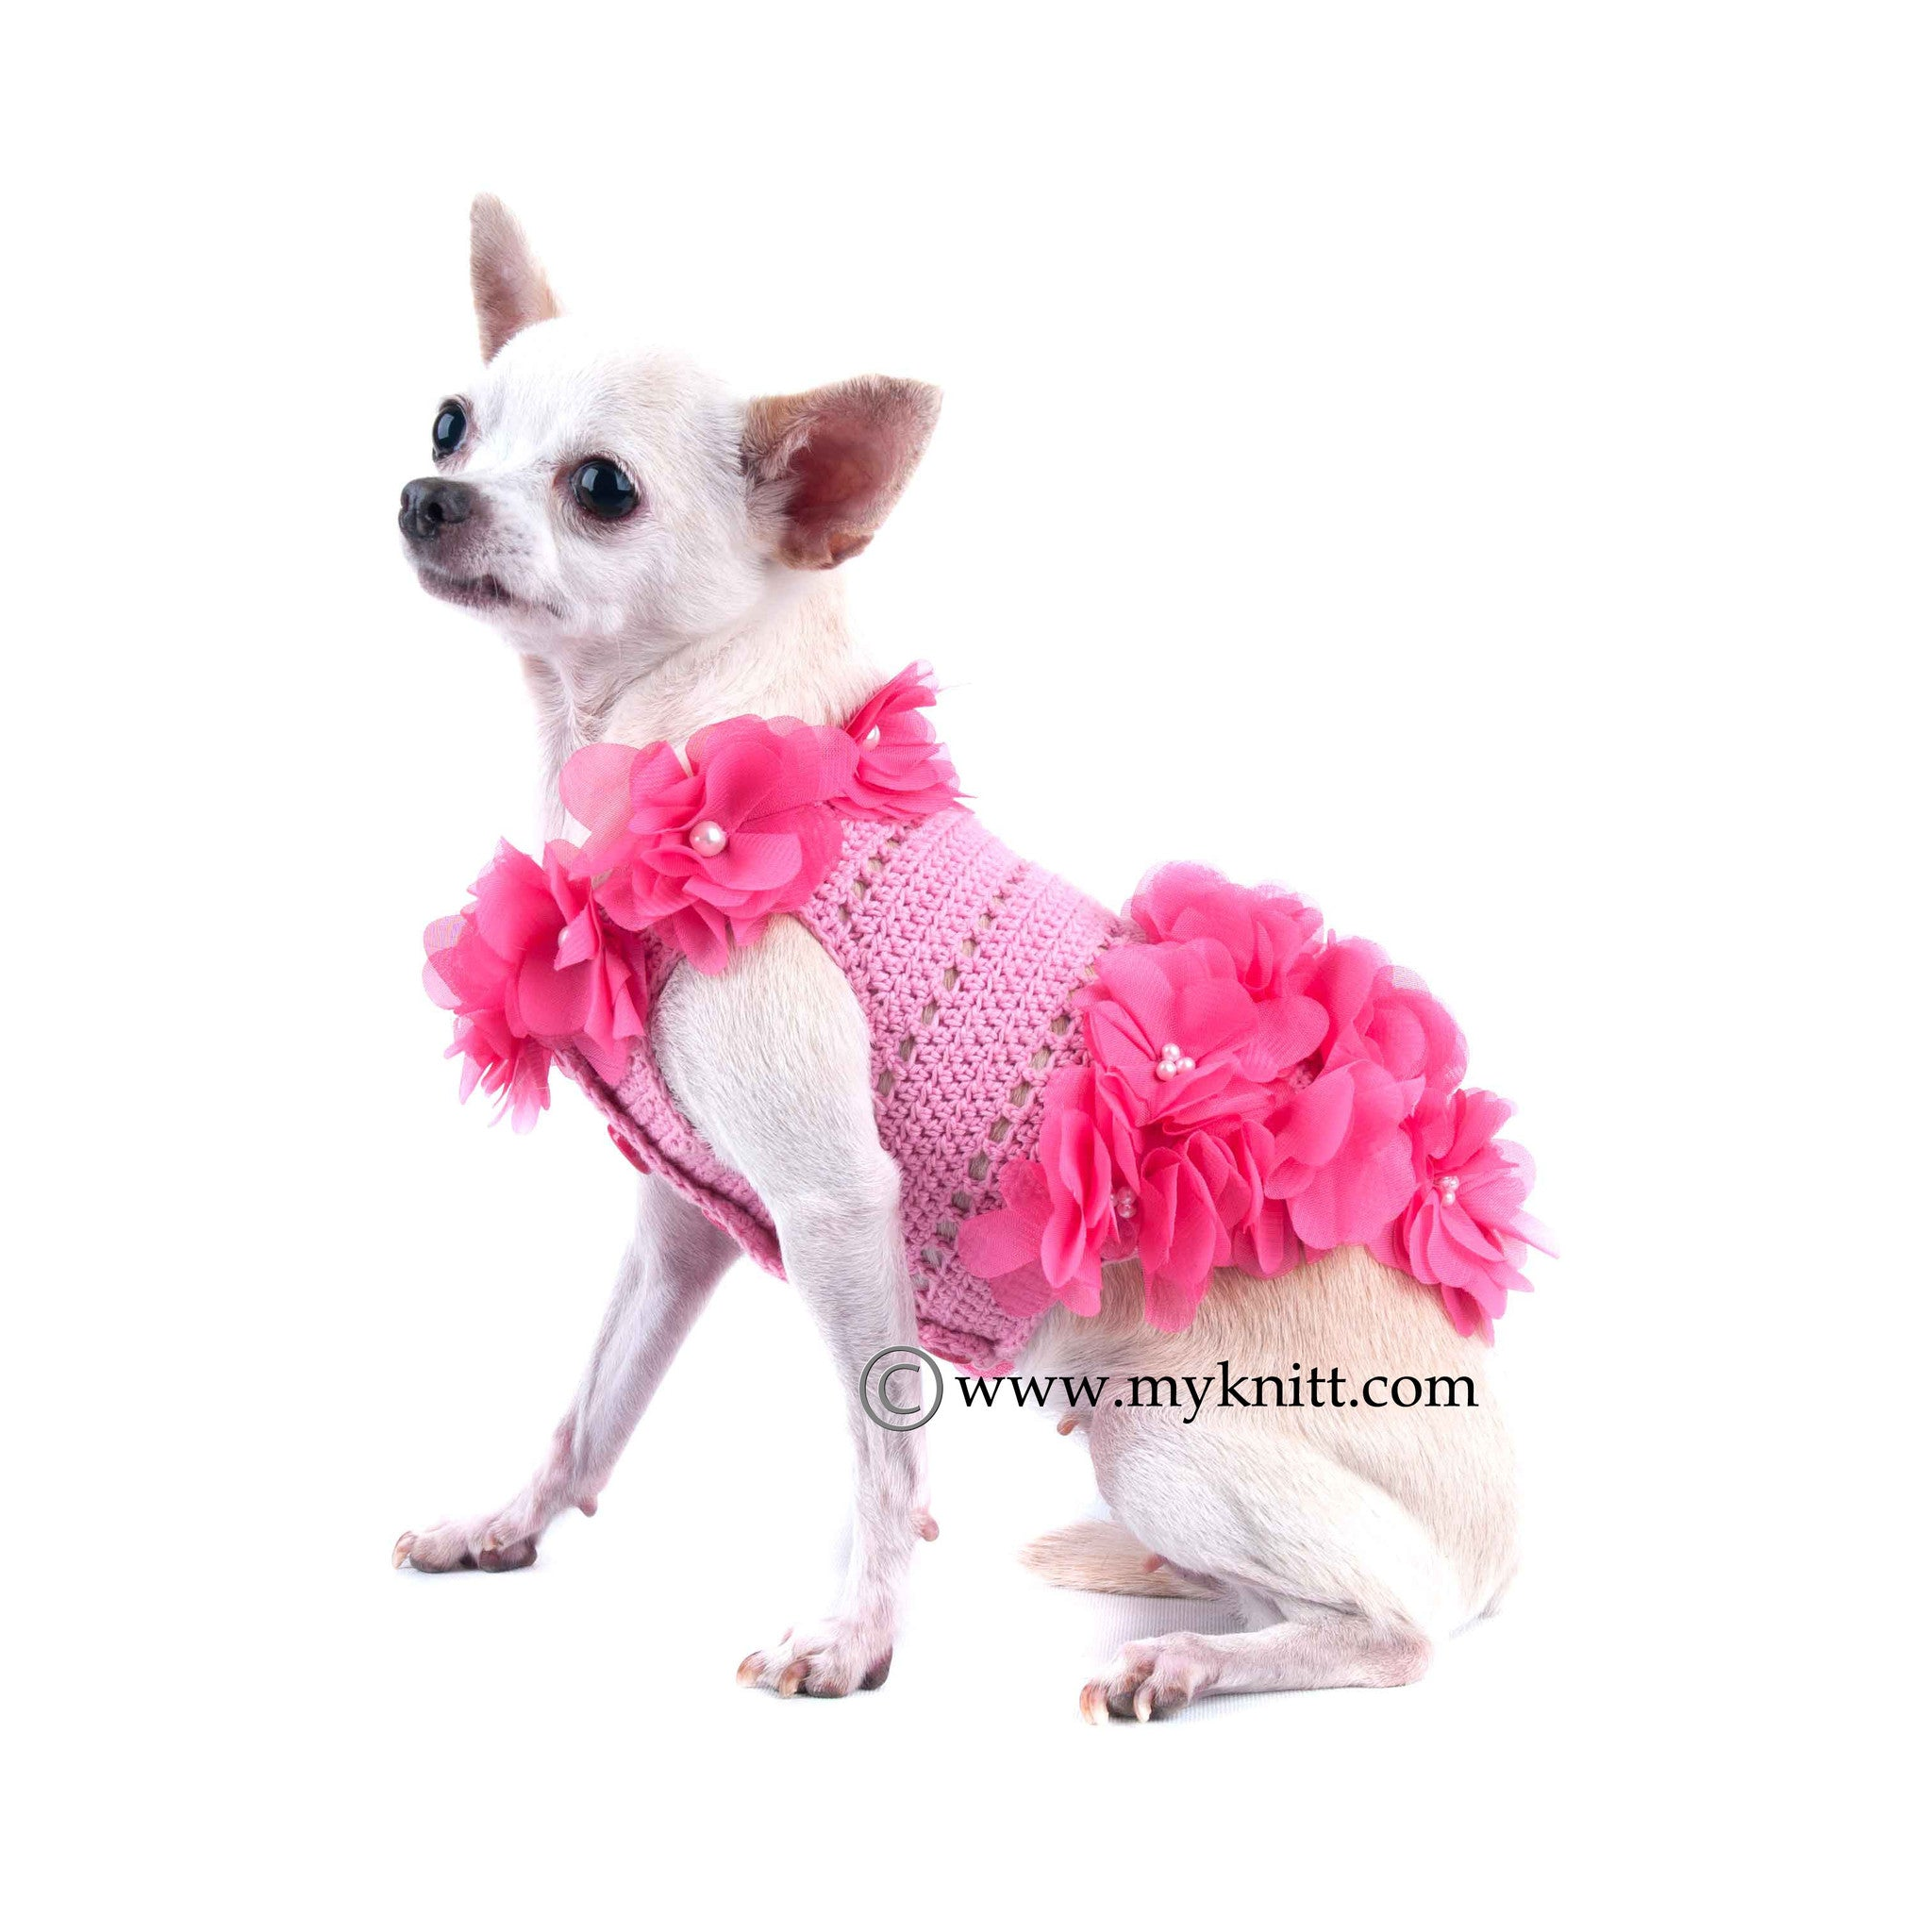 Butterfly Dog Dress  ~Fancy Dog ~Puppy Dress ~Pet Apparel ~Dog Clothes ~Couture Pet ~Dog Outfit ~Pretty Dog Dress ~Cute Dog Clothes ~Harness